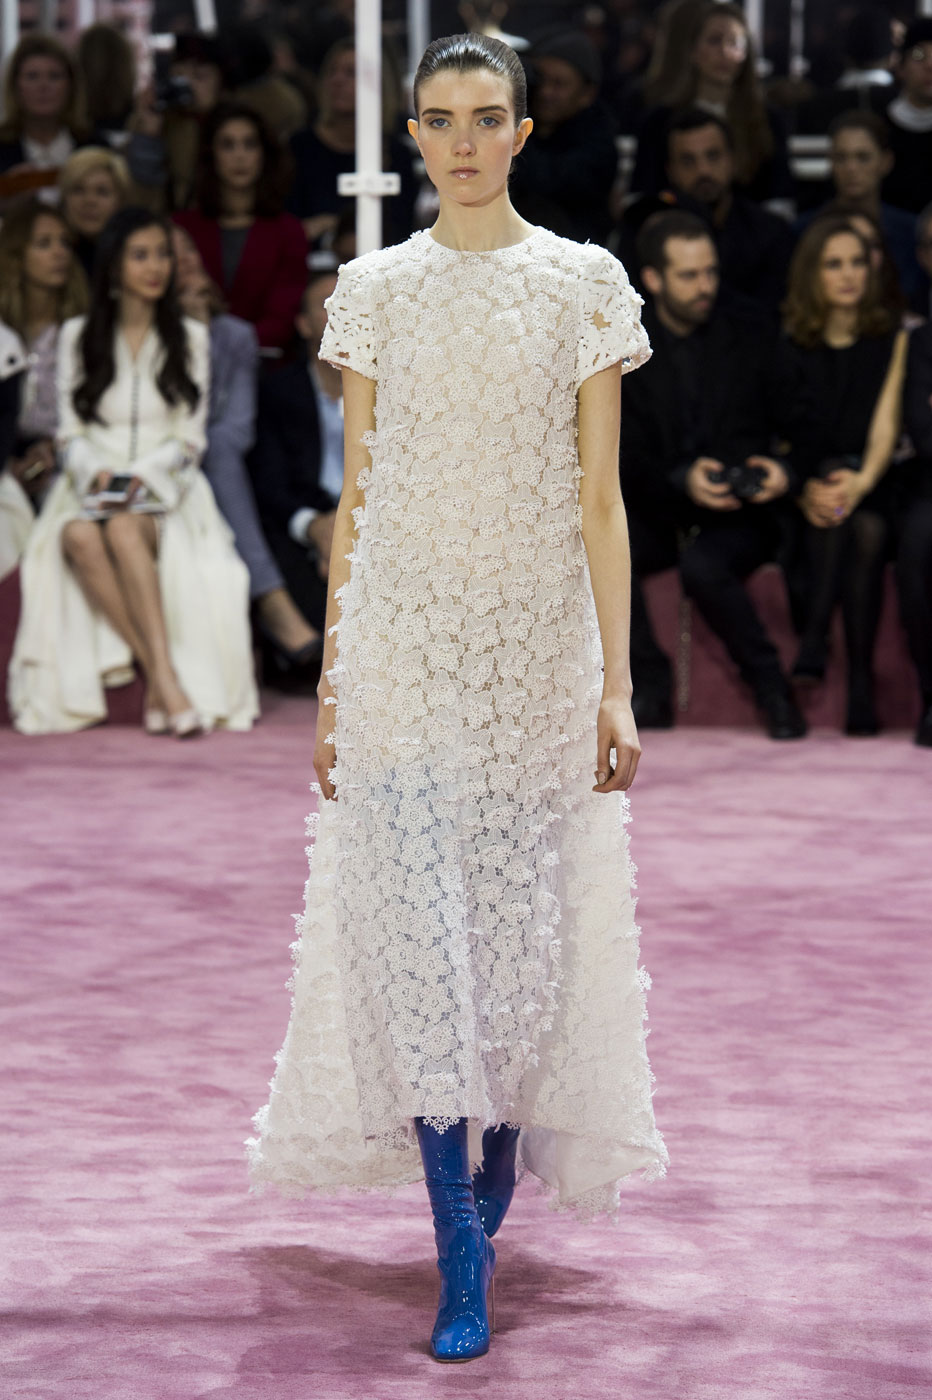 Christian-Dior-fashion-runway-show-haute-couture-paris-spring-summer-2015-the-impression-100